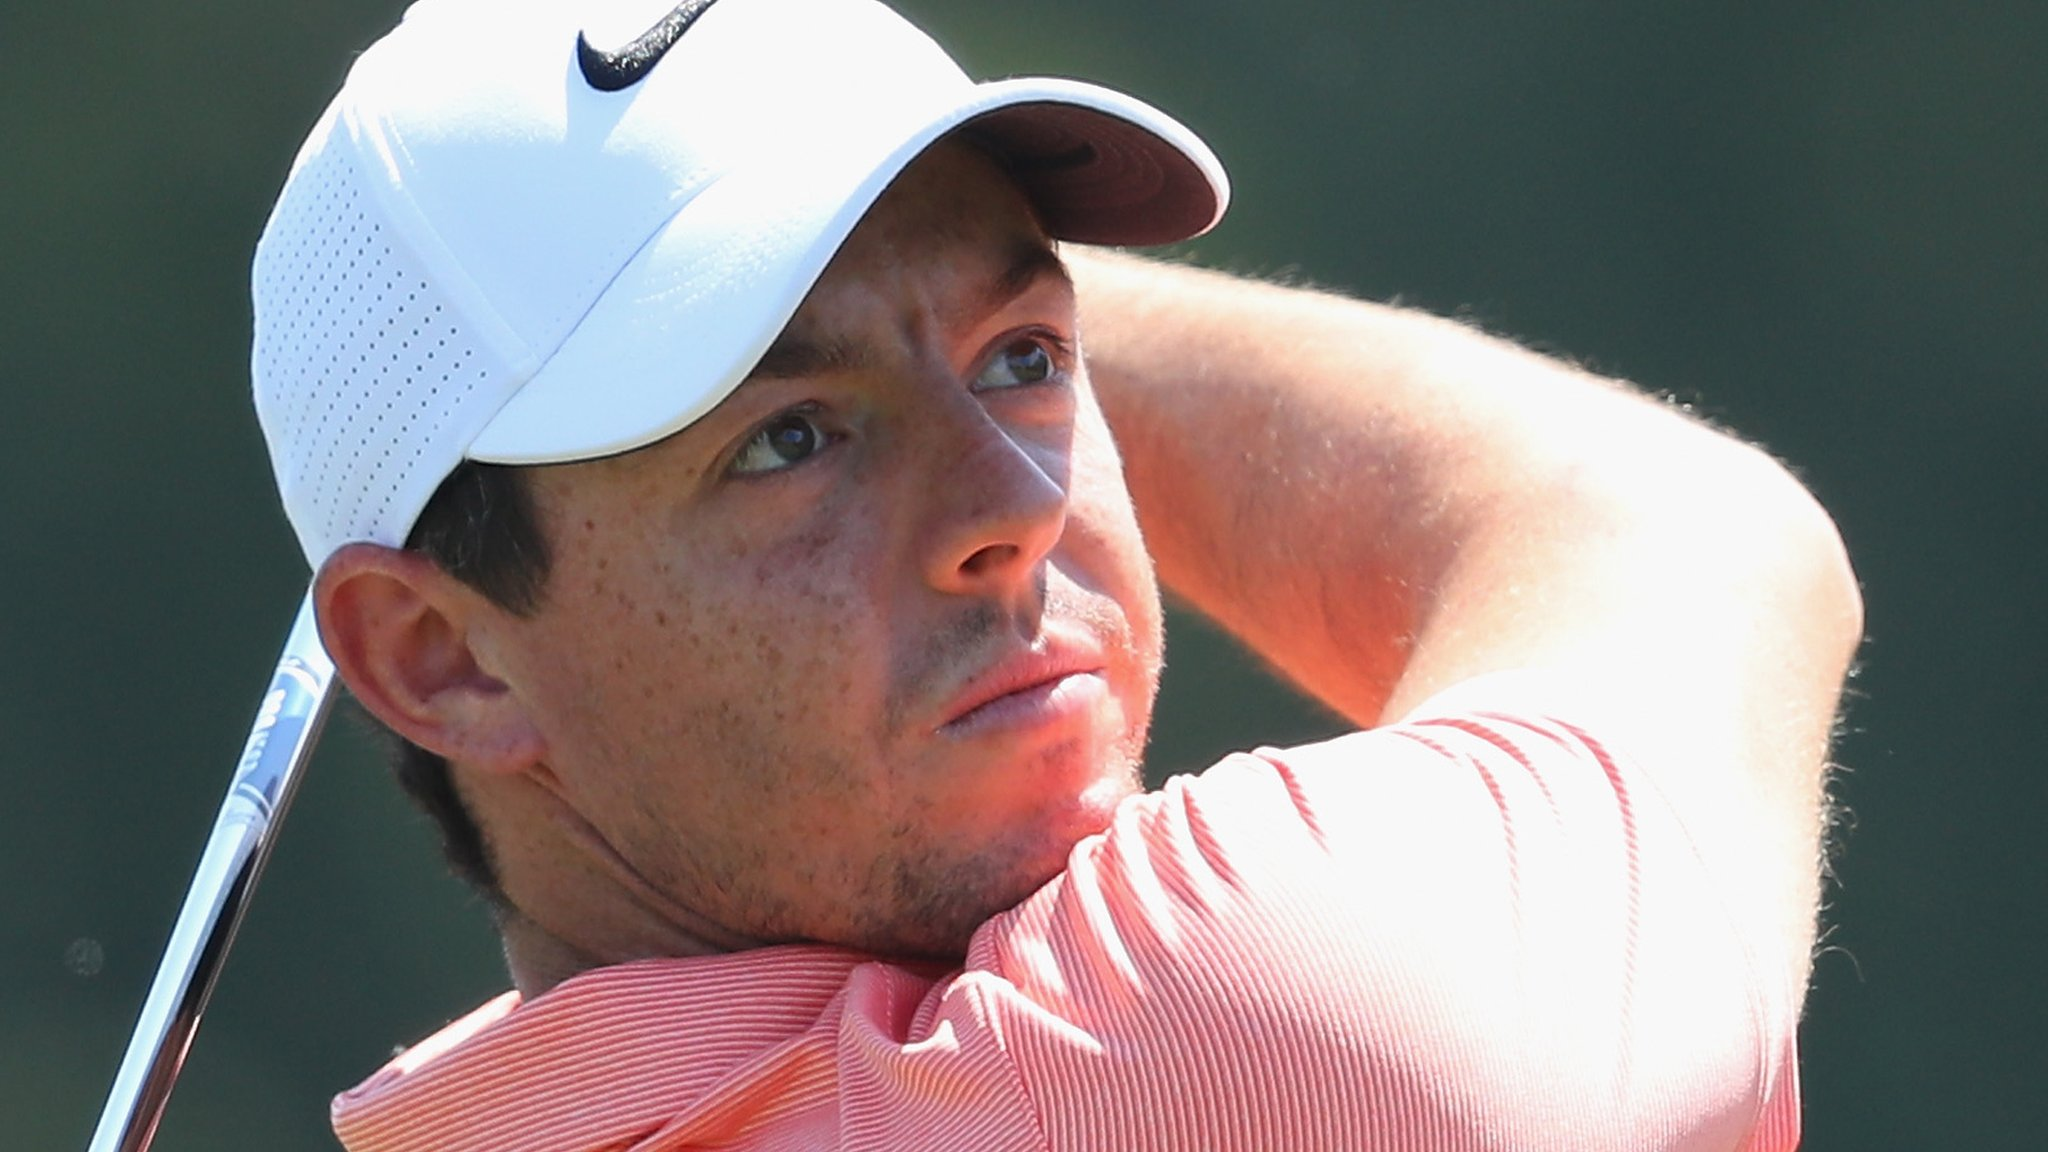 Injured McIlroy pulls out of US Open warm-up